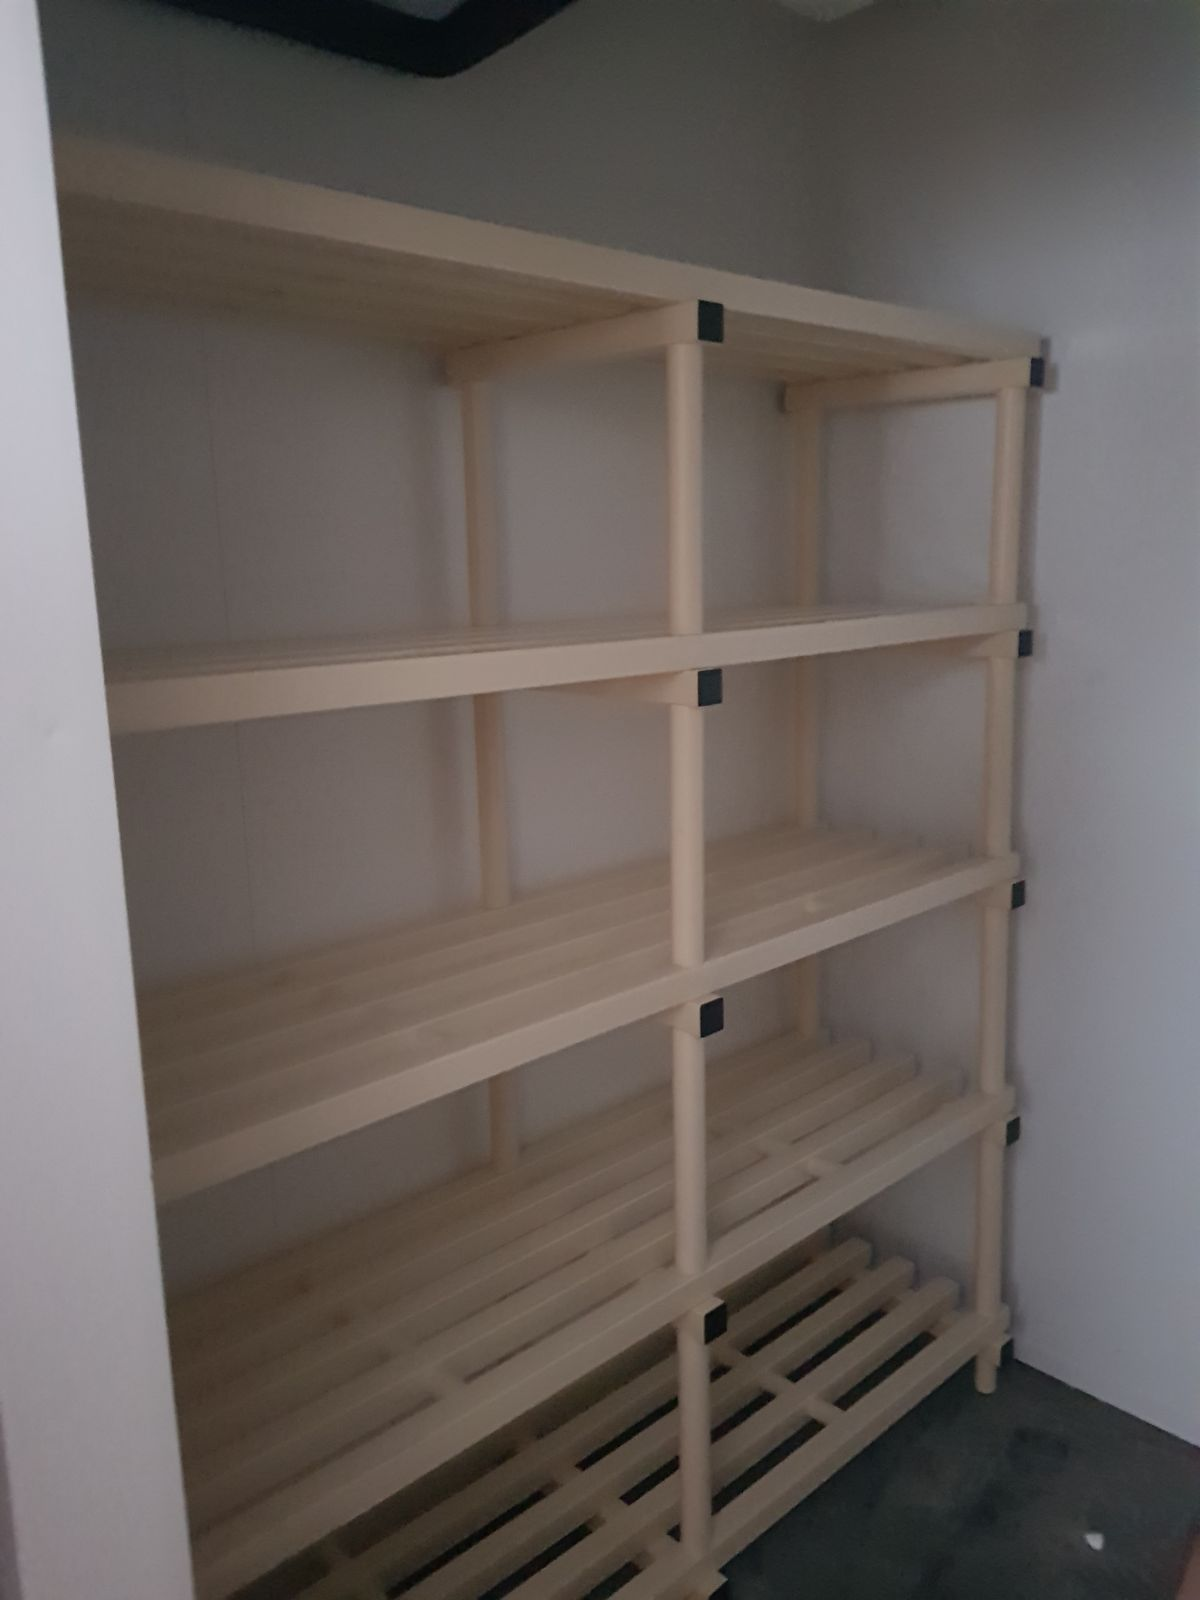 The Wardrobe Perth Coolroom Shelving Products Cool Room Cold Room Shelves For Sale